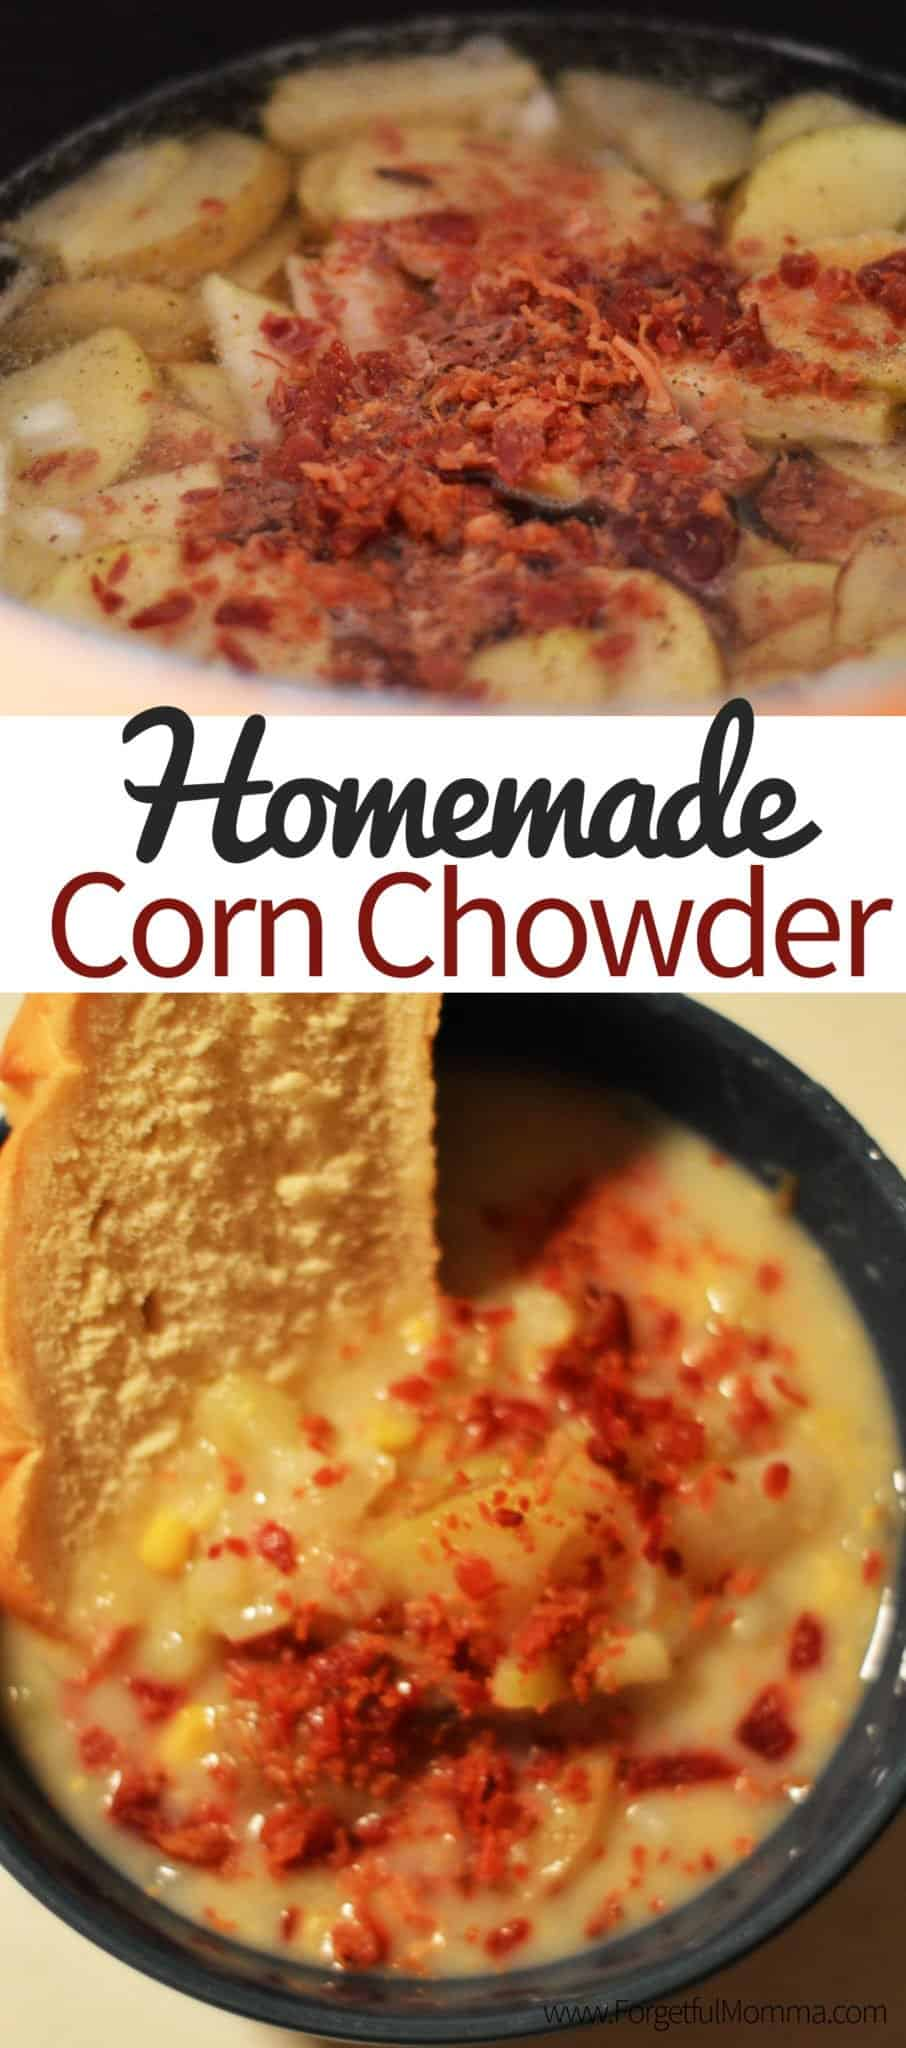 Homemade Corn Chowder